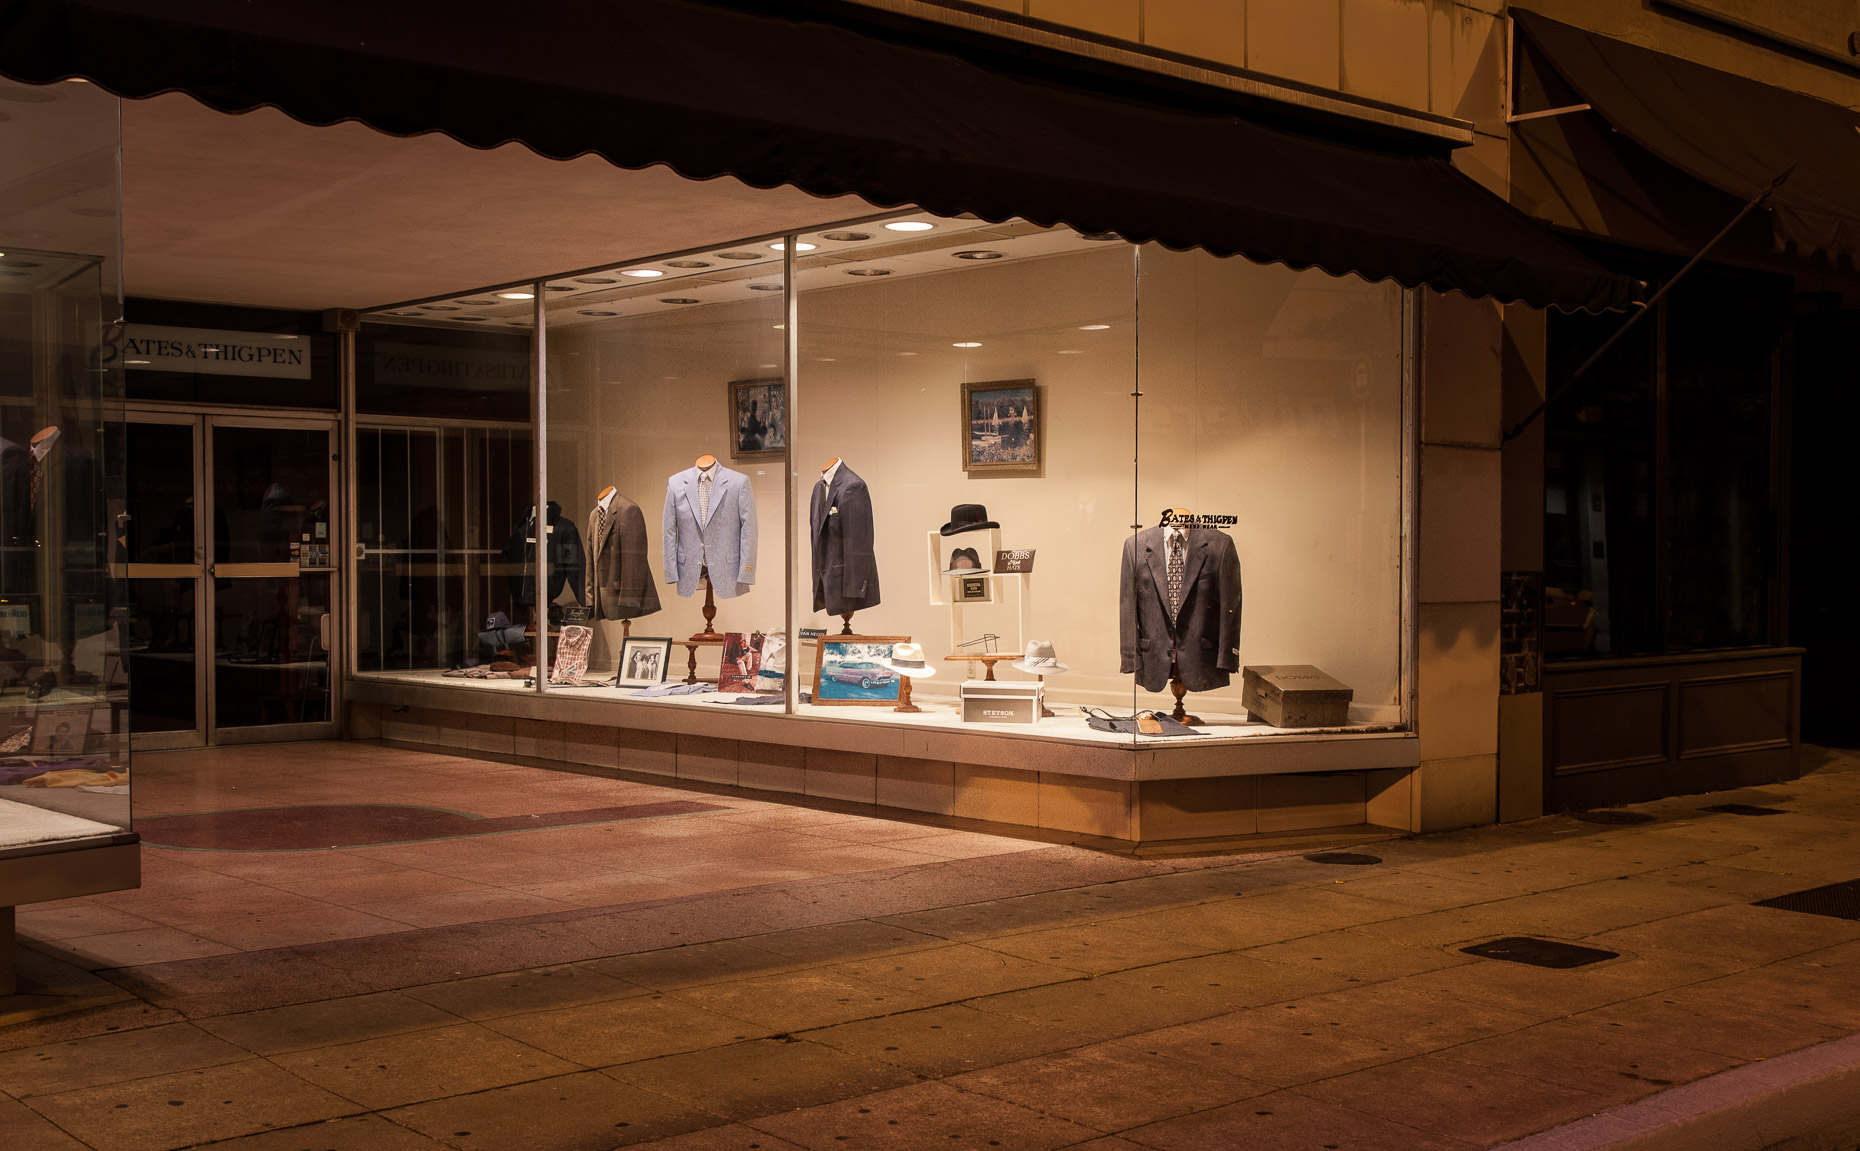 Retail store window at night with men